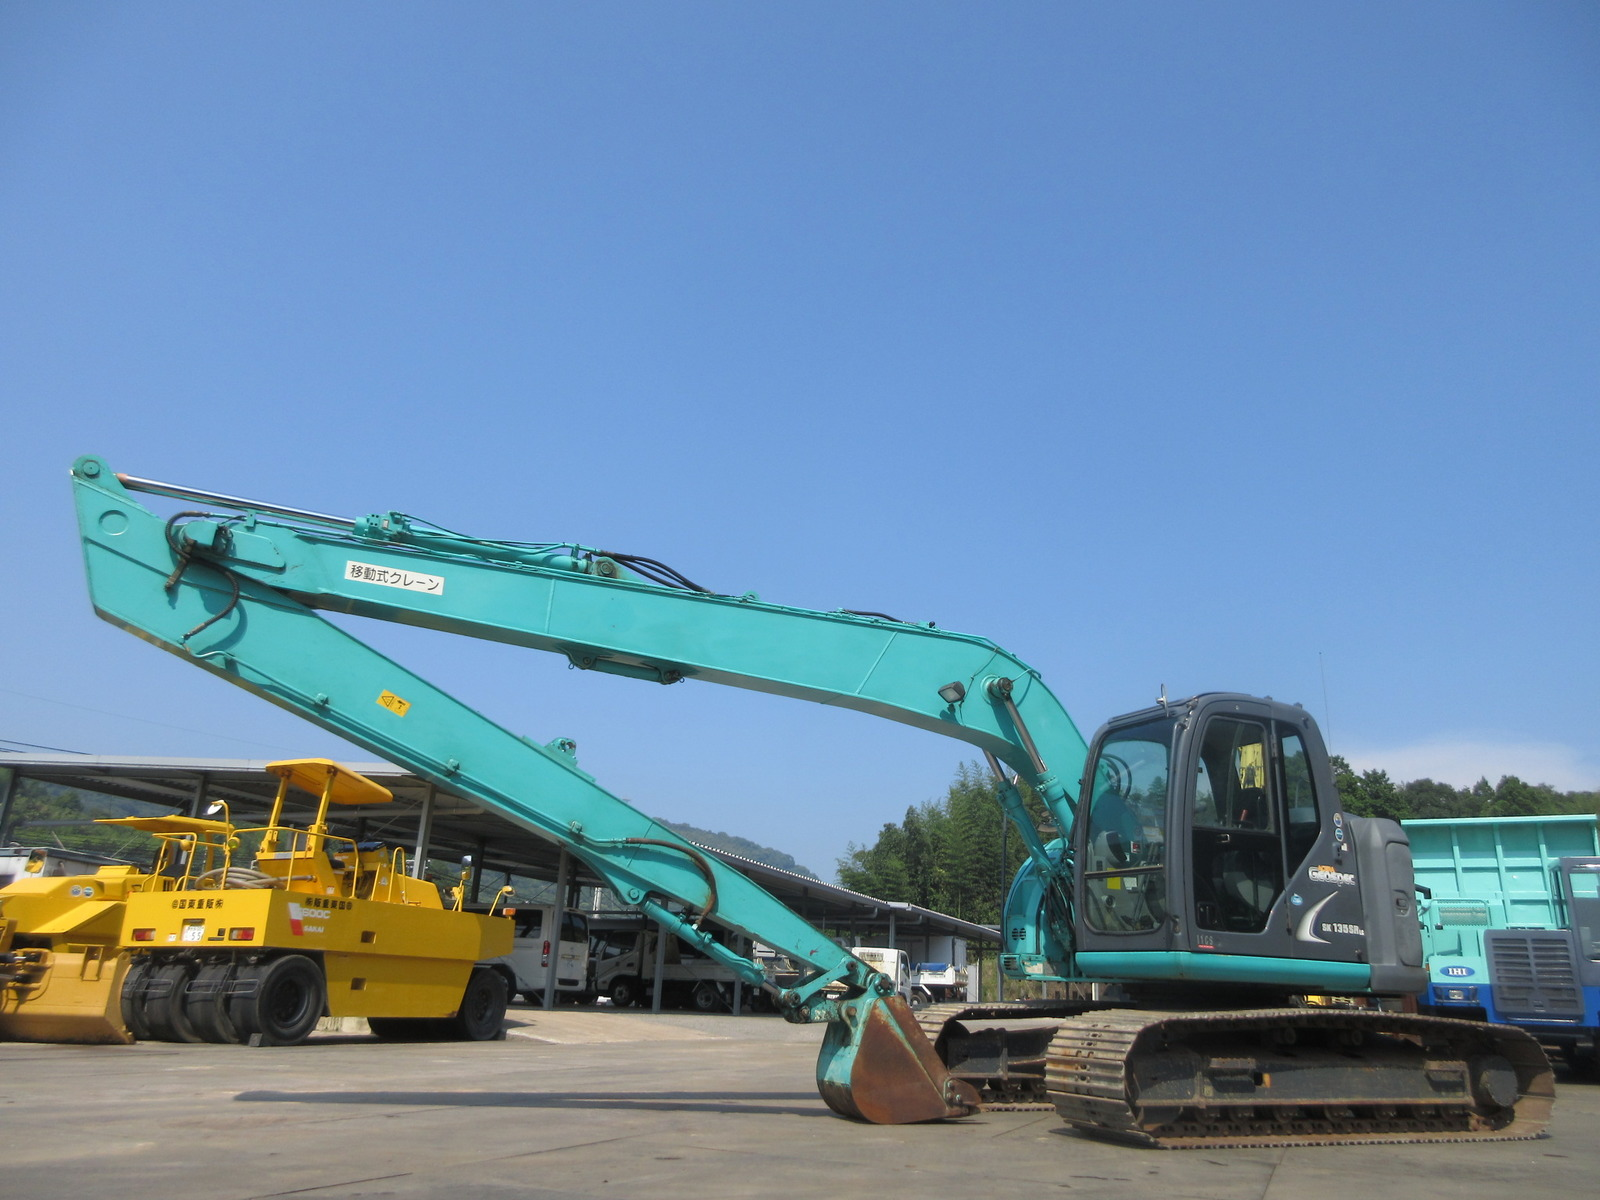 Used Construction Machine used Excavator KOBELCO SK135SRLC-2 Photos